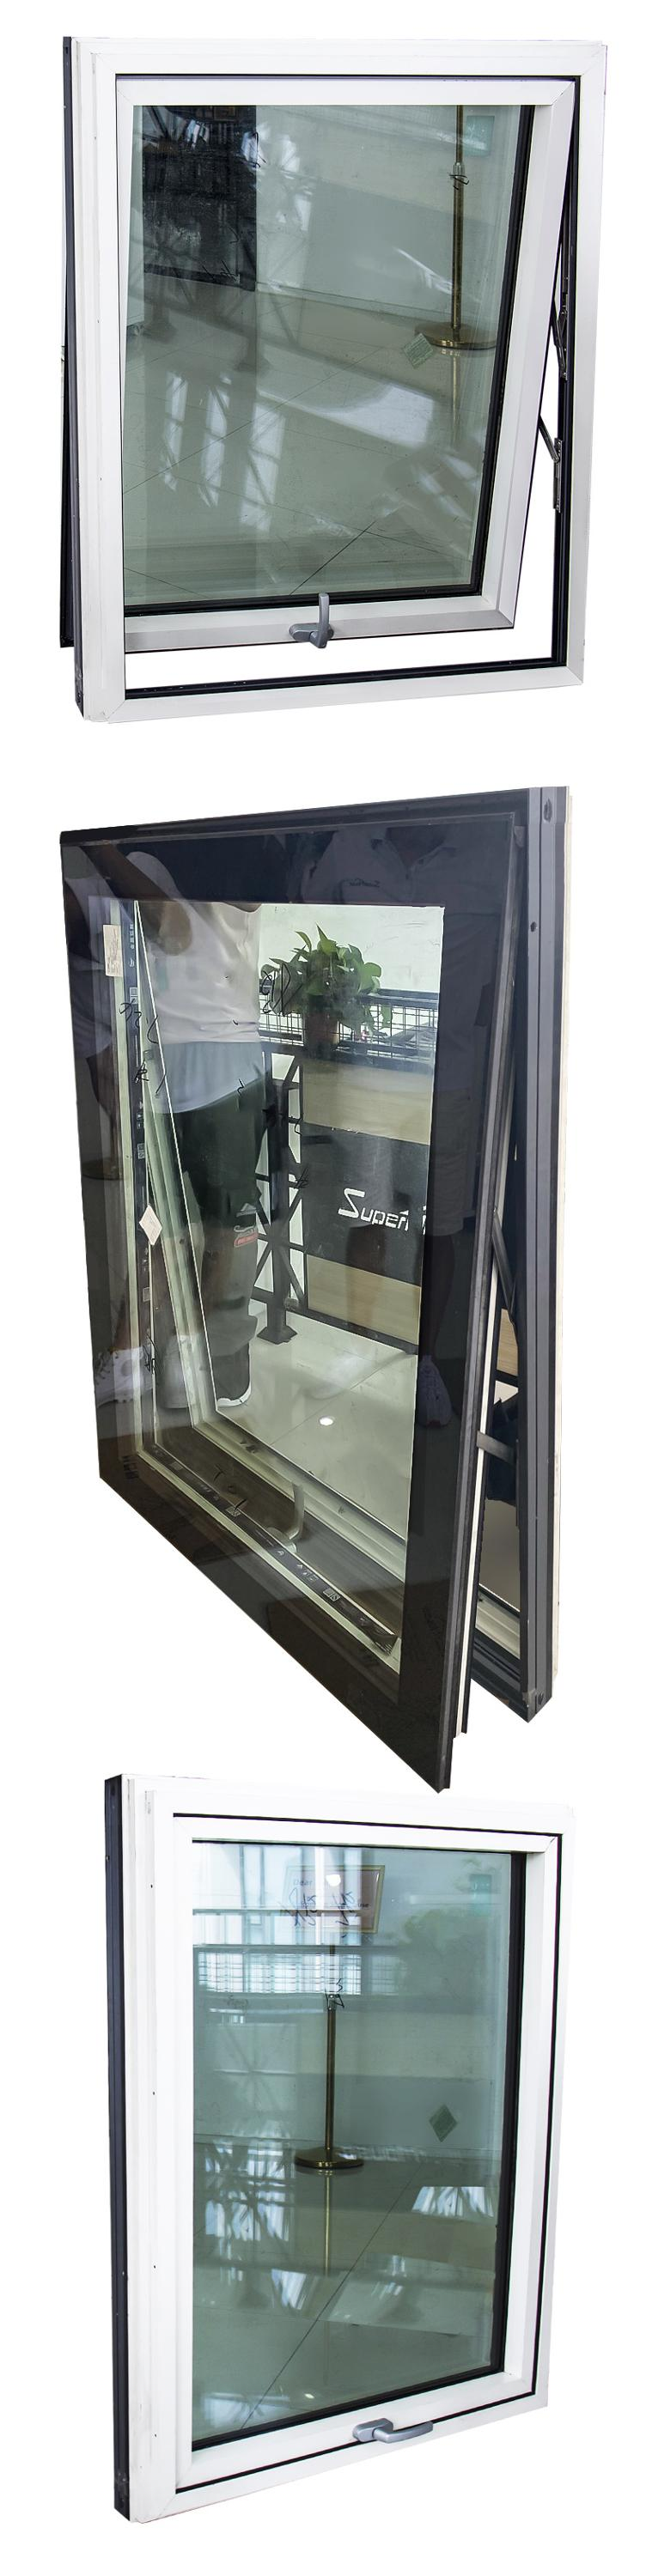 Australia standard AS2047 chain winder awning window vertical opening double glazed window